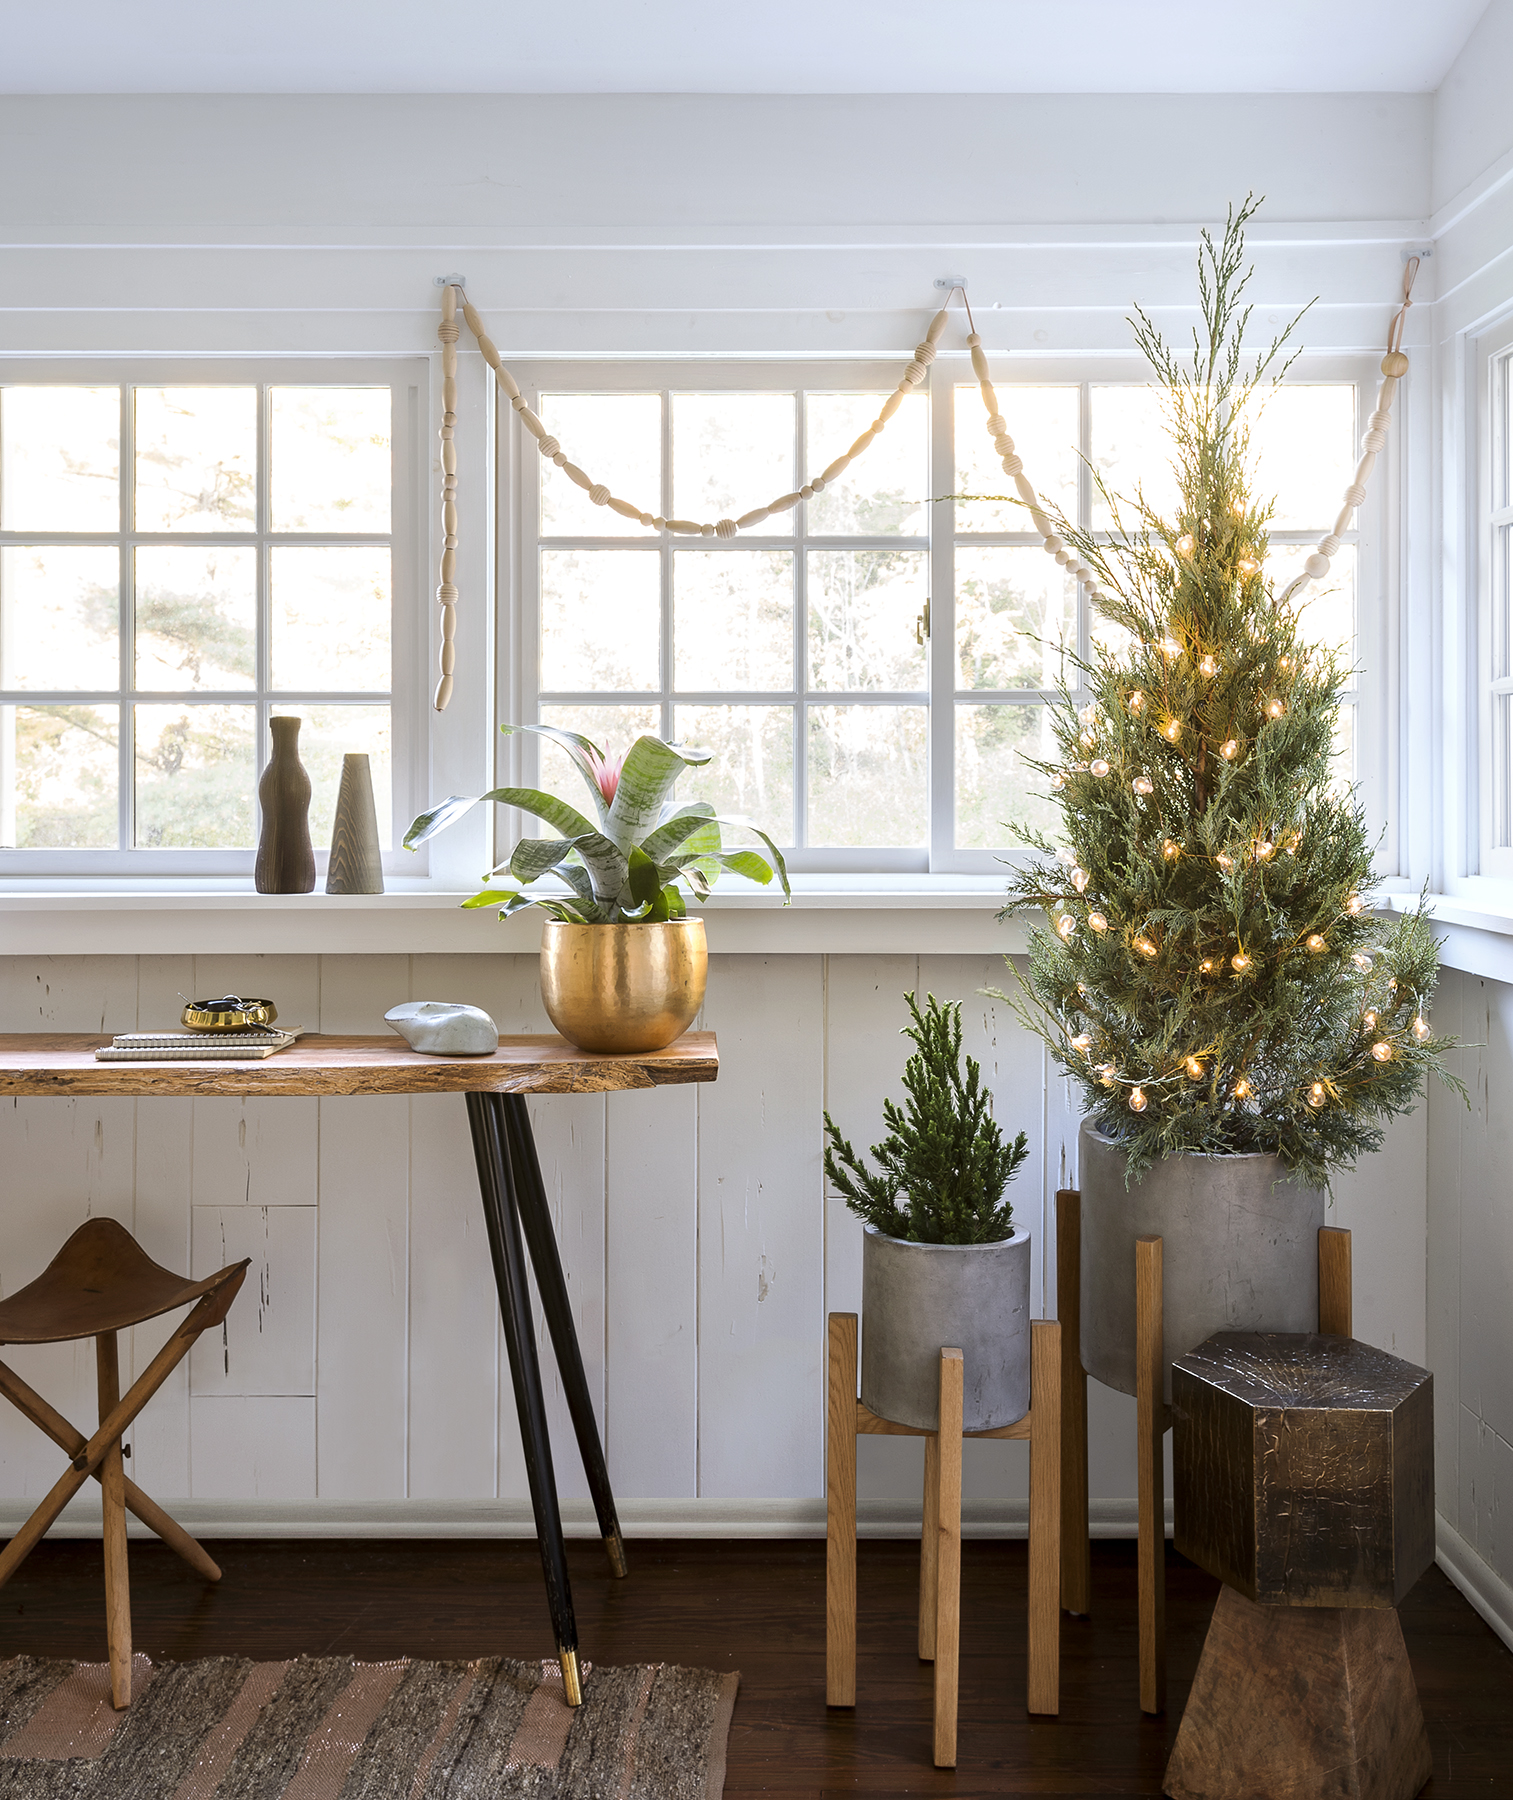 Room with holiday accents, white, wood